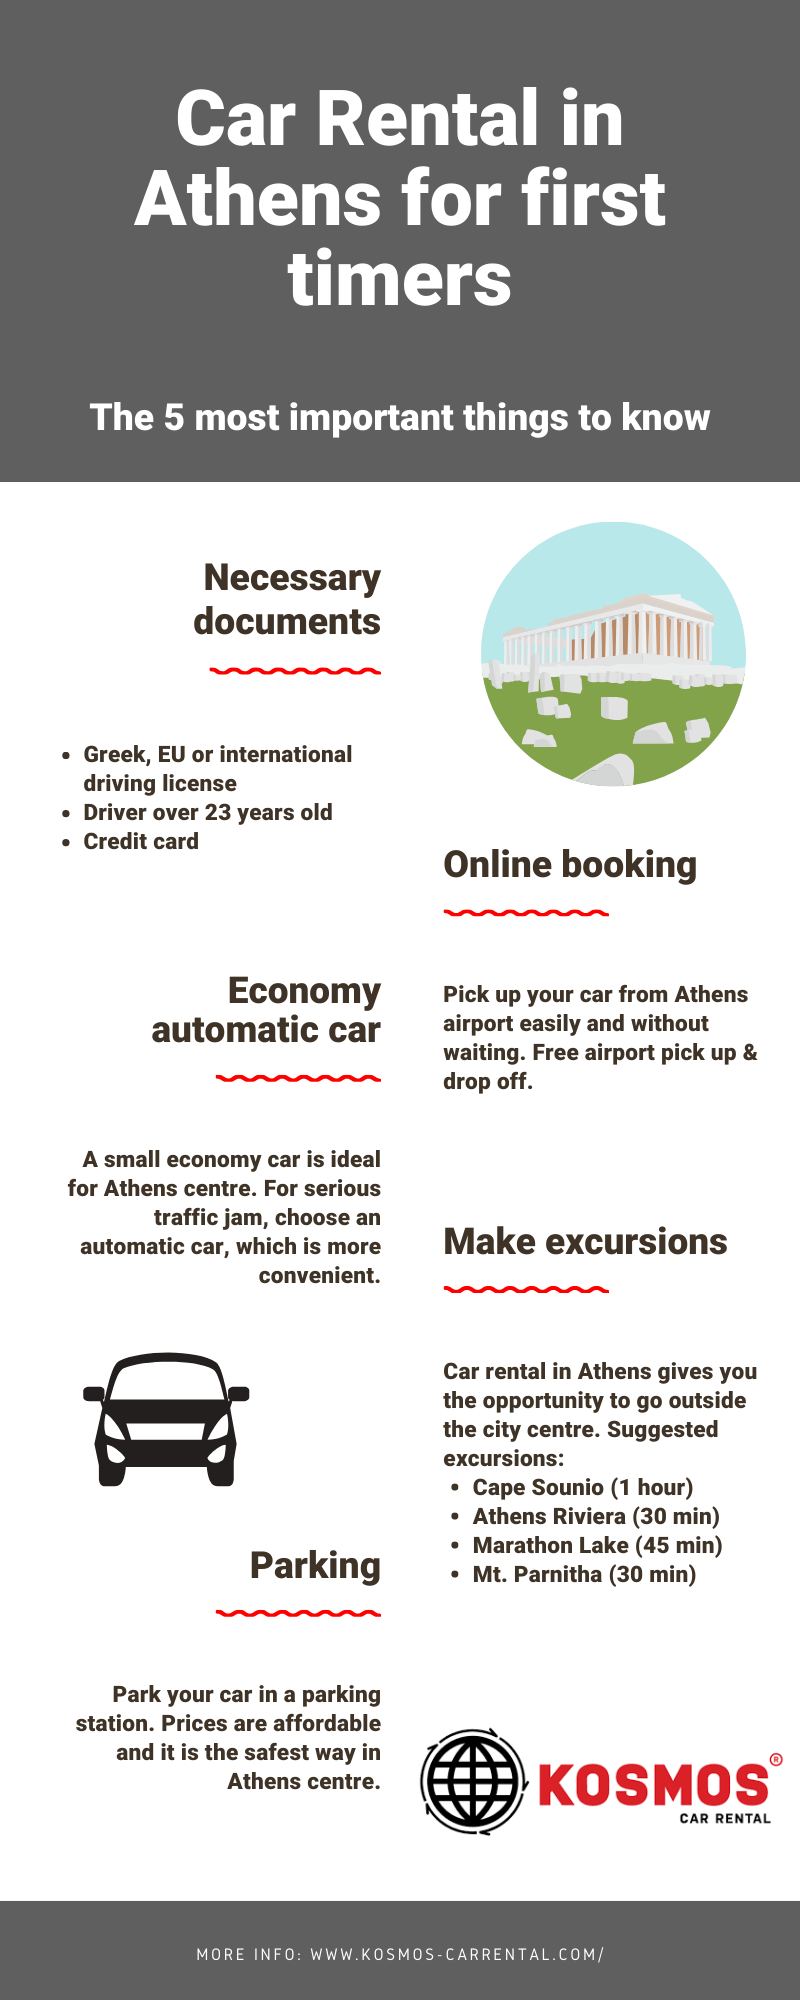 Car rental in Athens for first timers